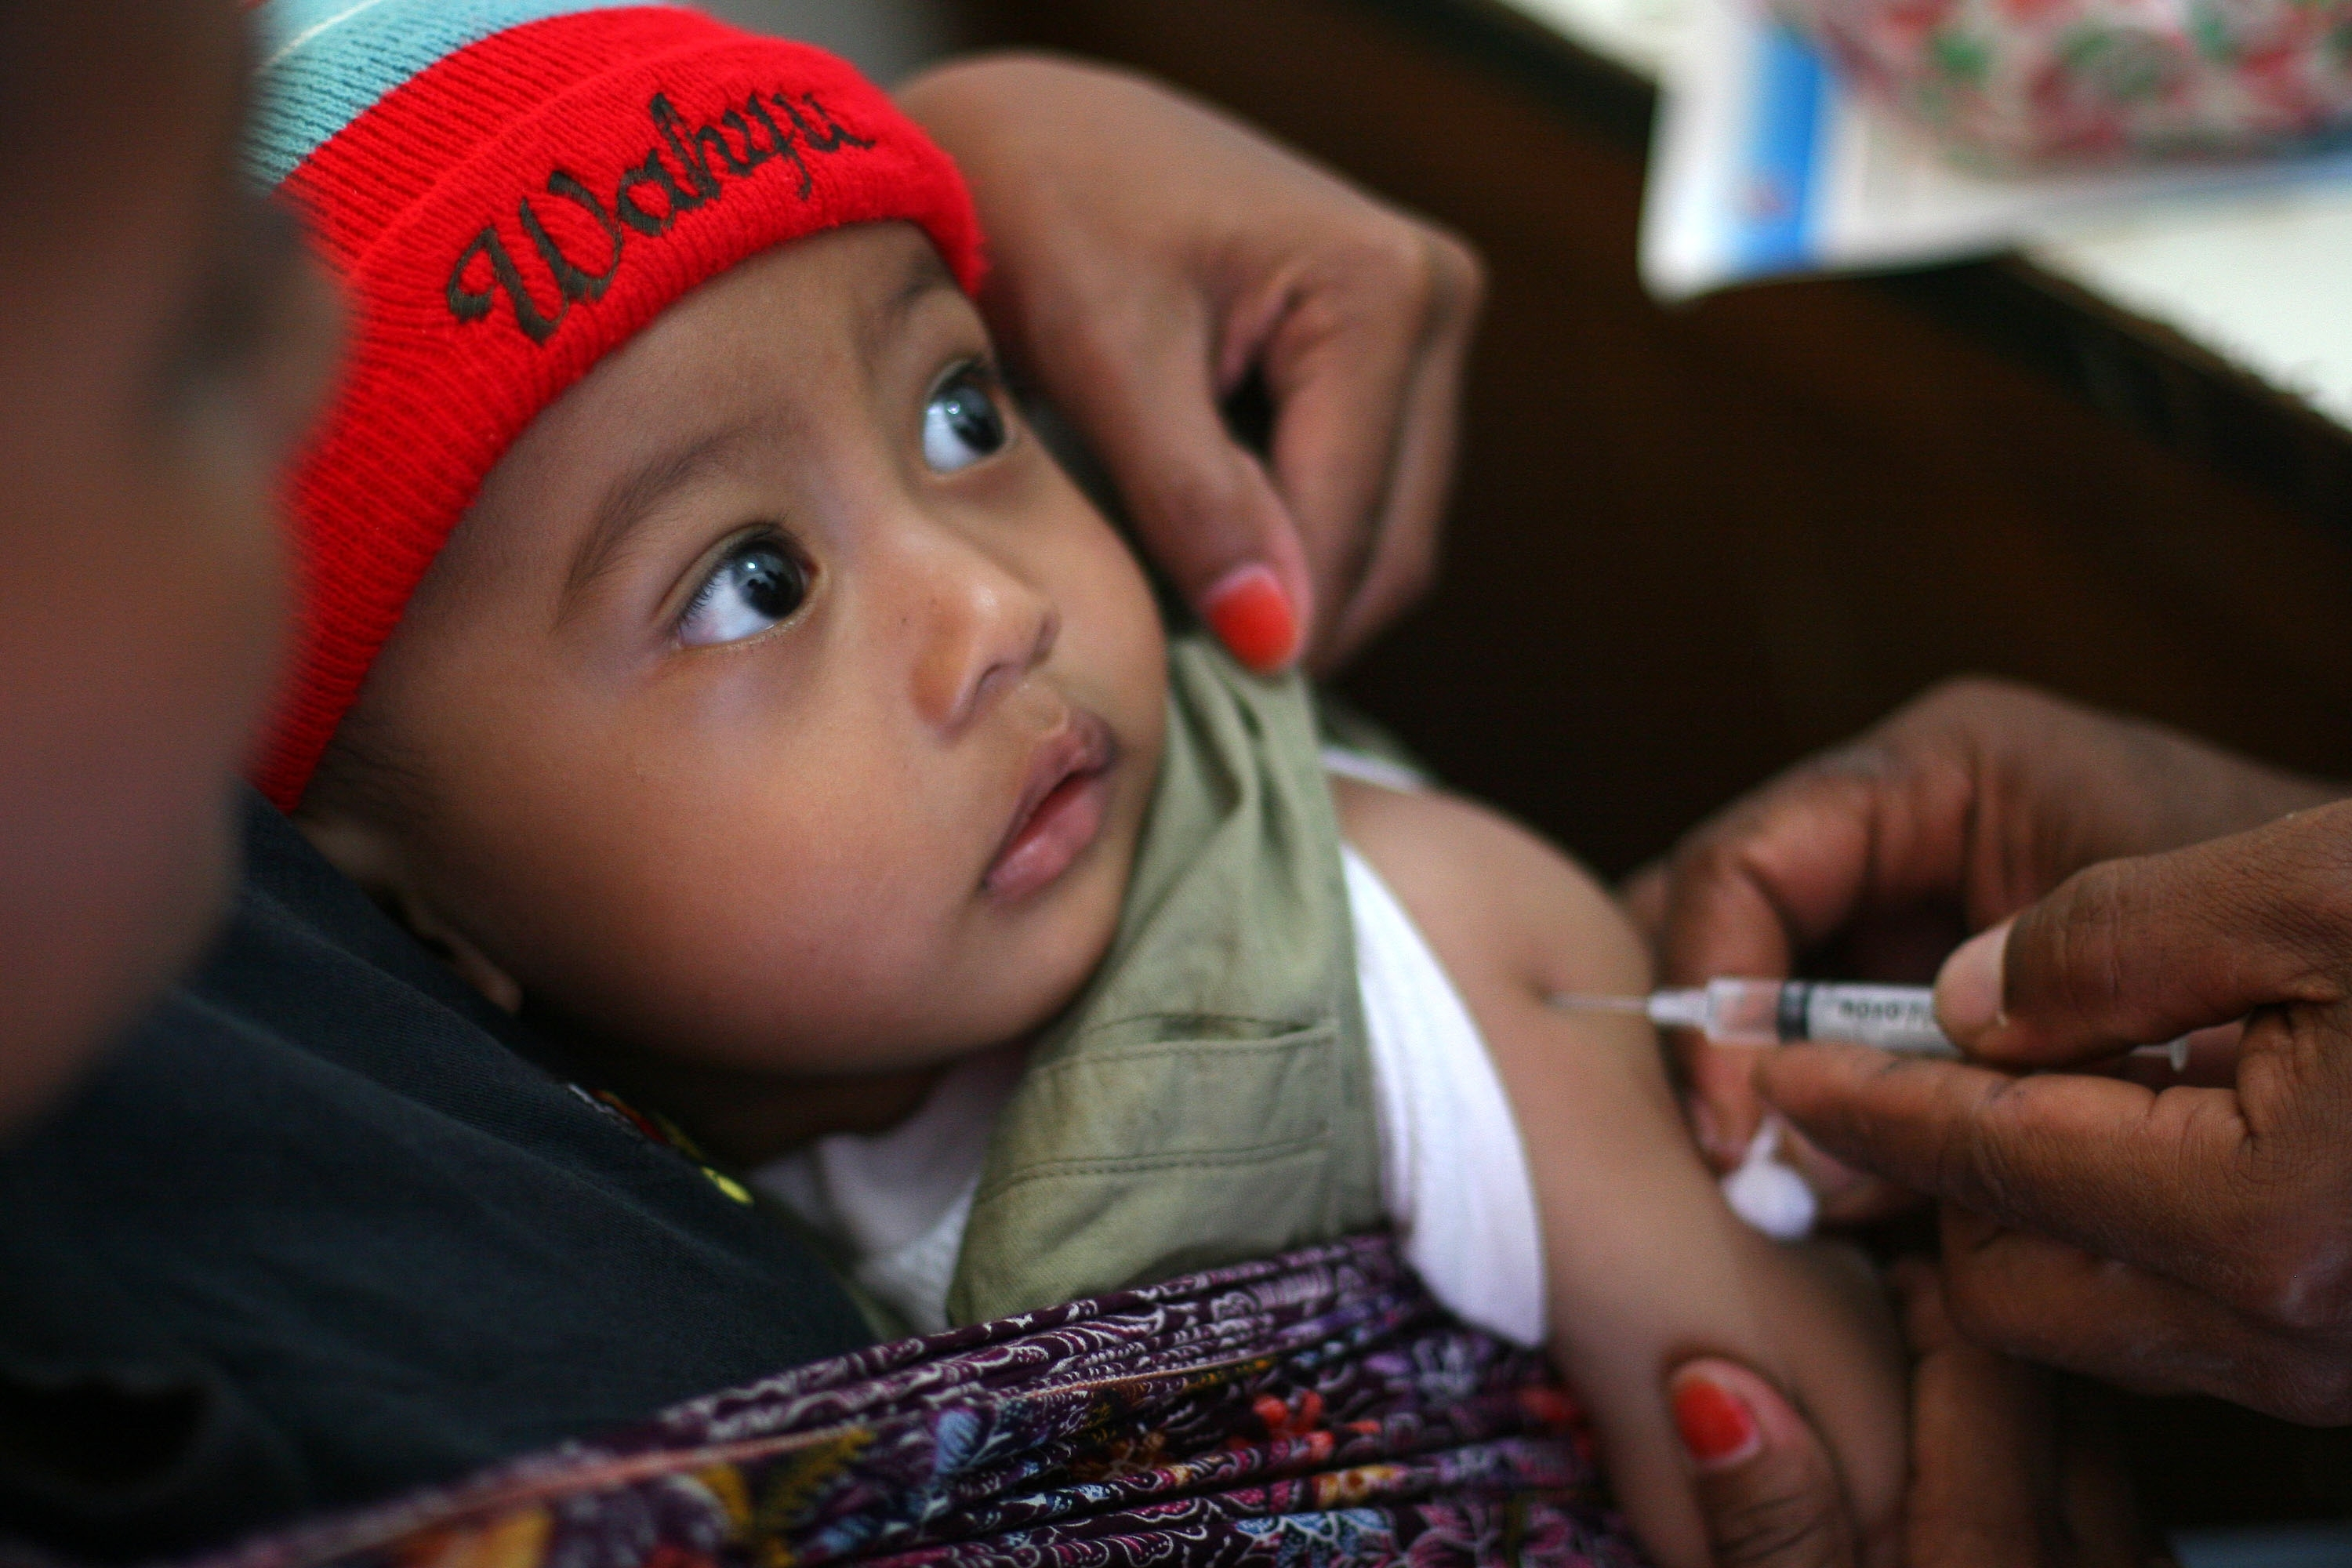 Measles outbreak puts children at risk